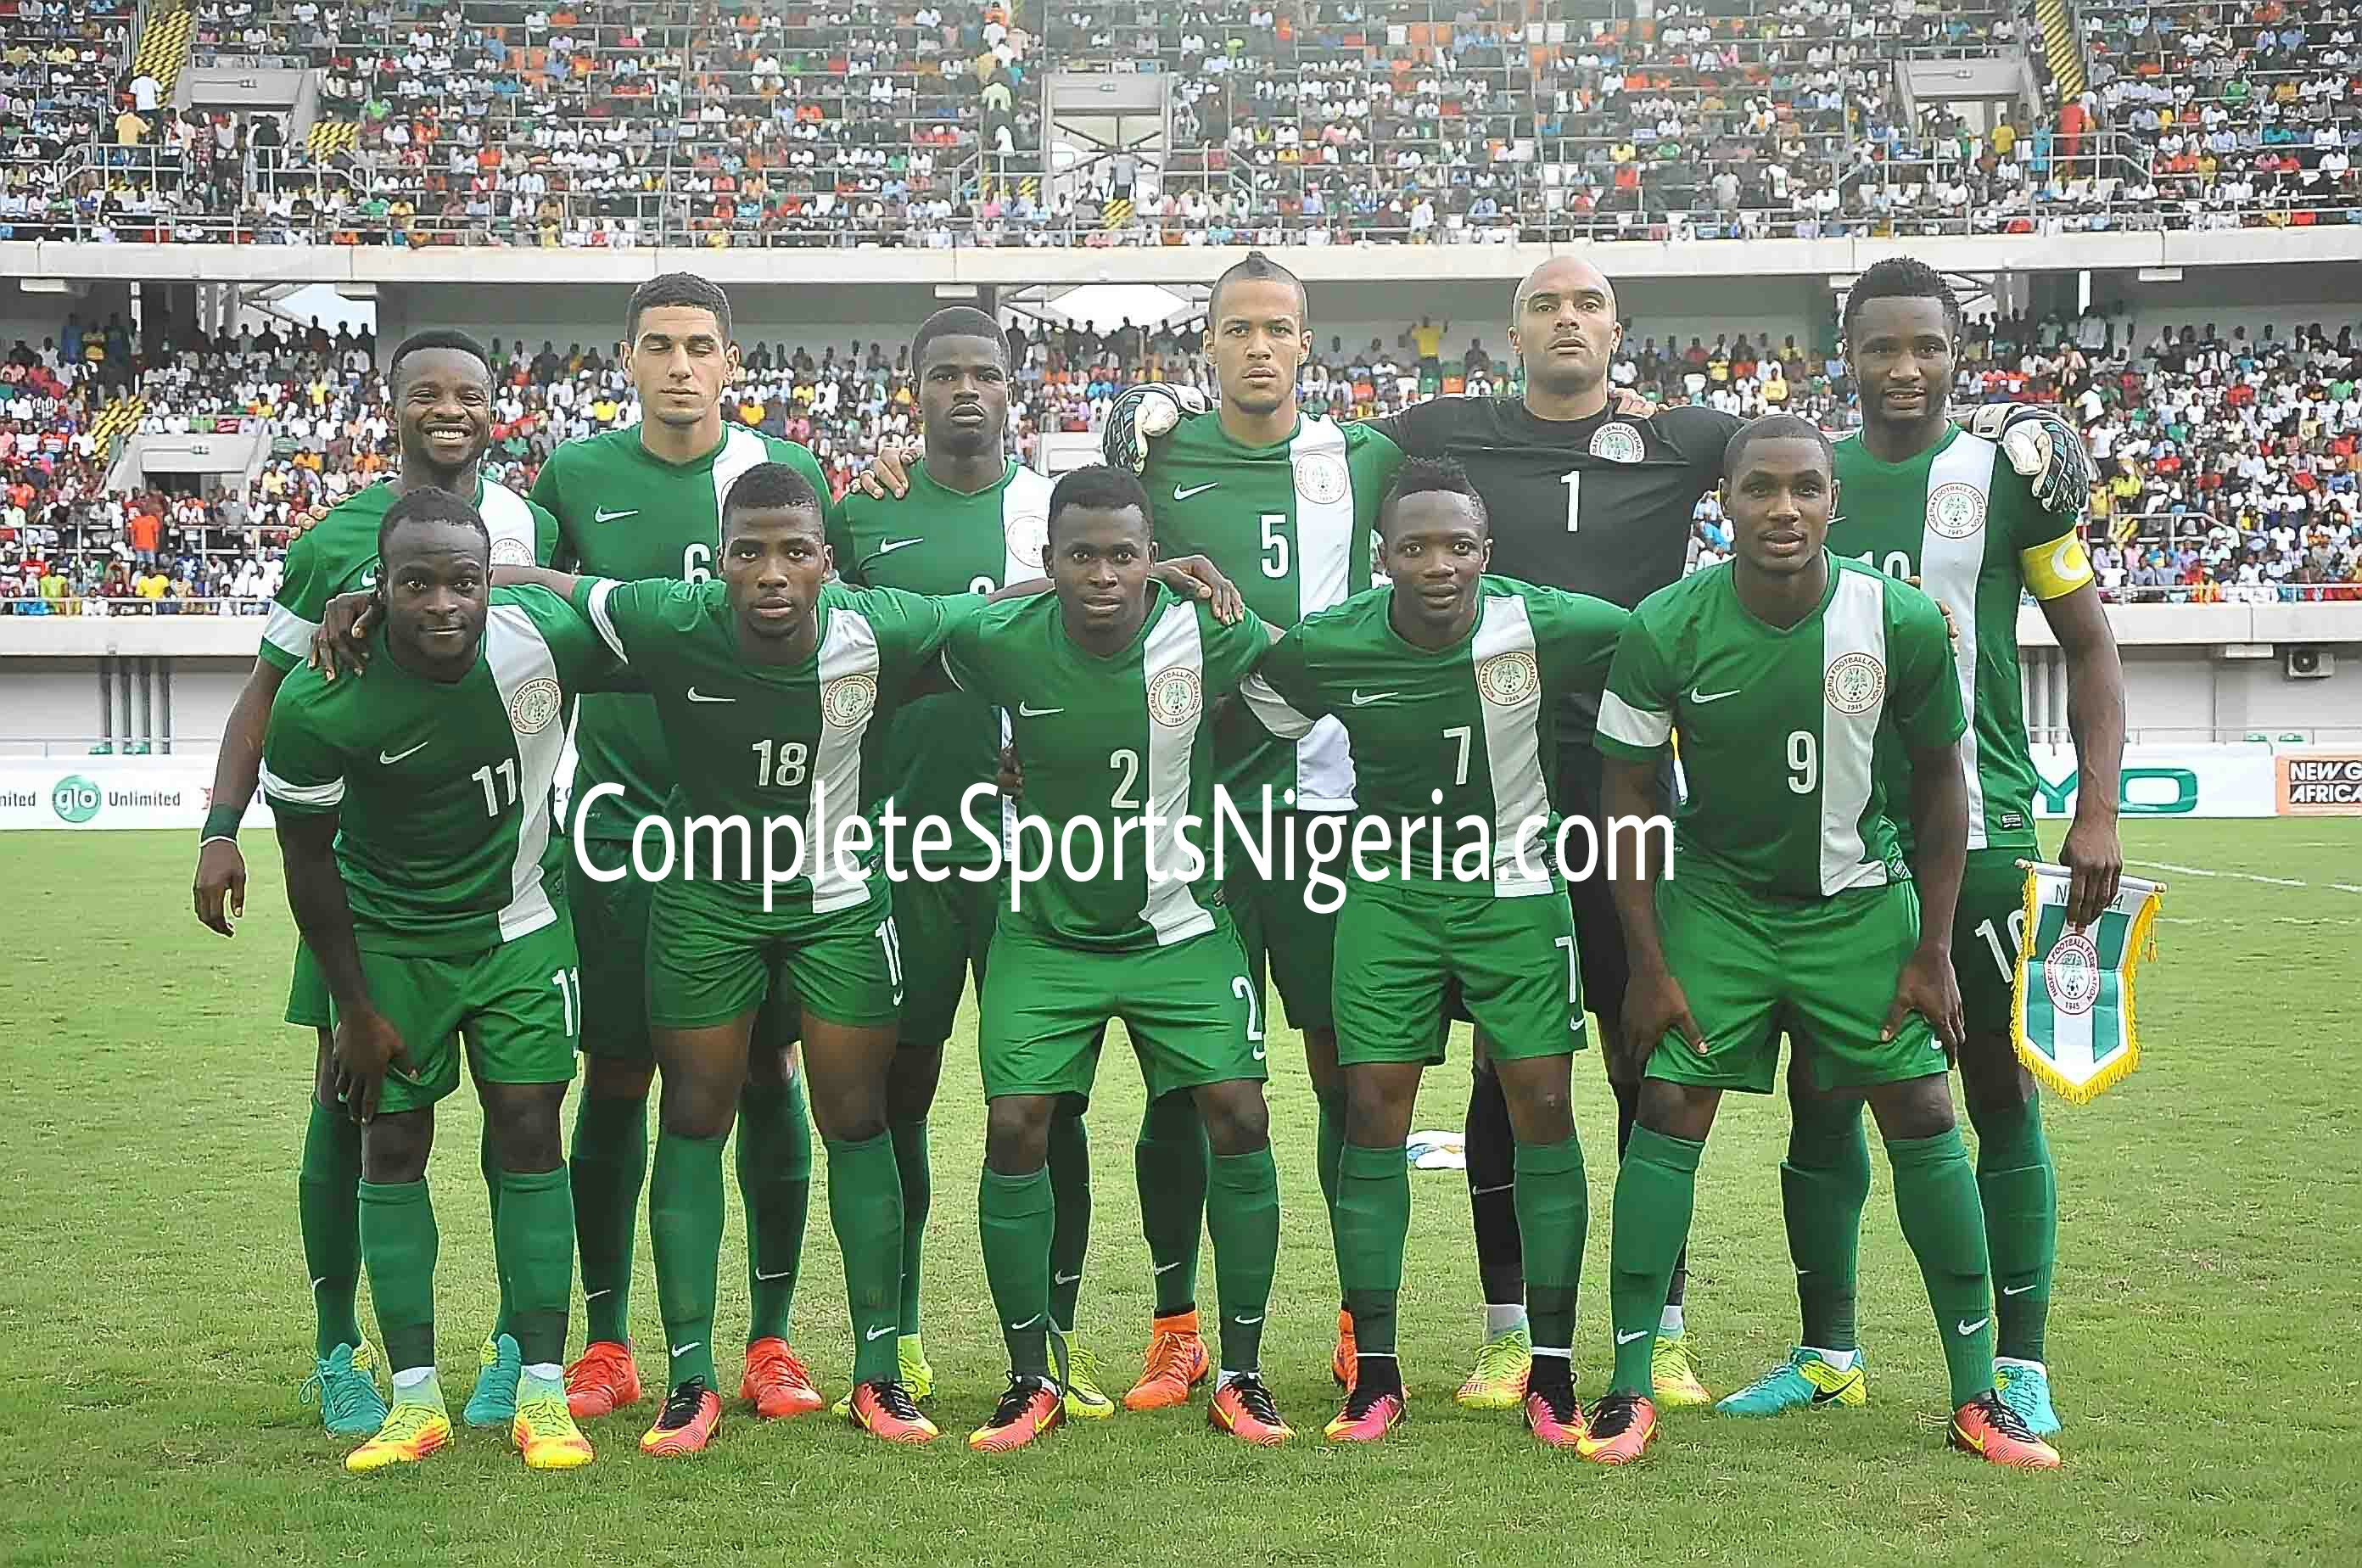 Super Eagles To Play Two Friendlies Ahead Of Cameroon Clashes